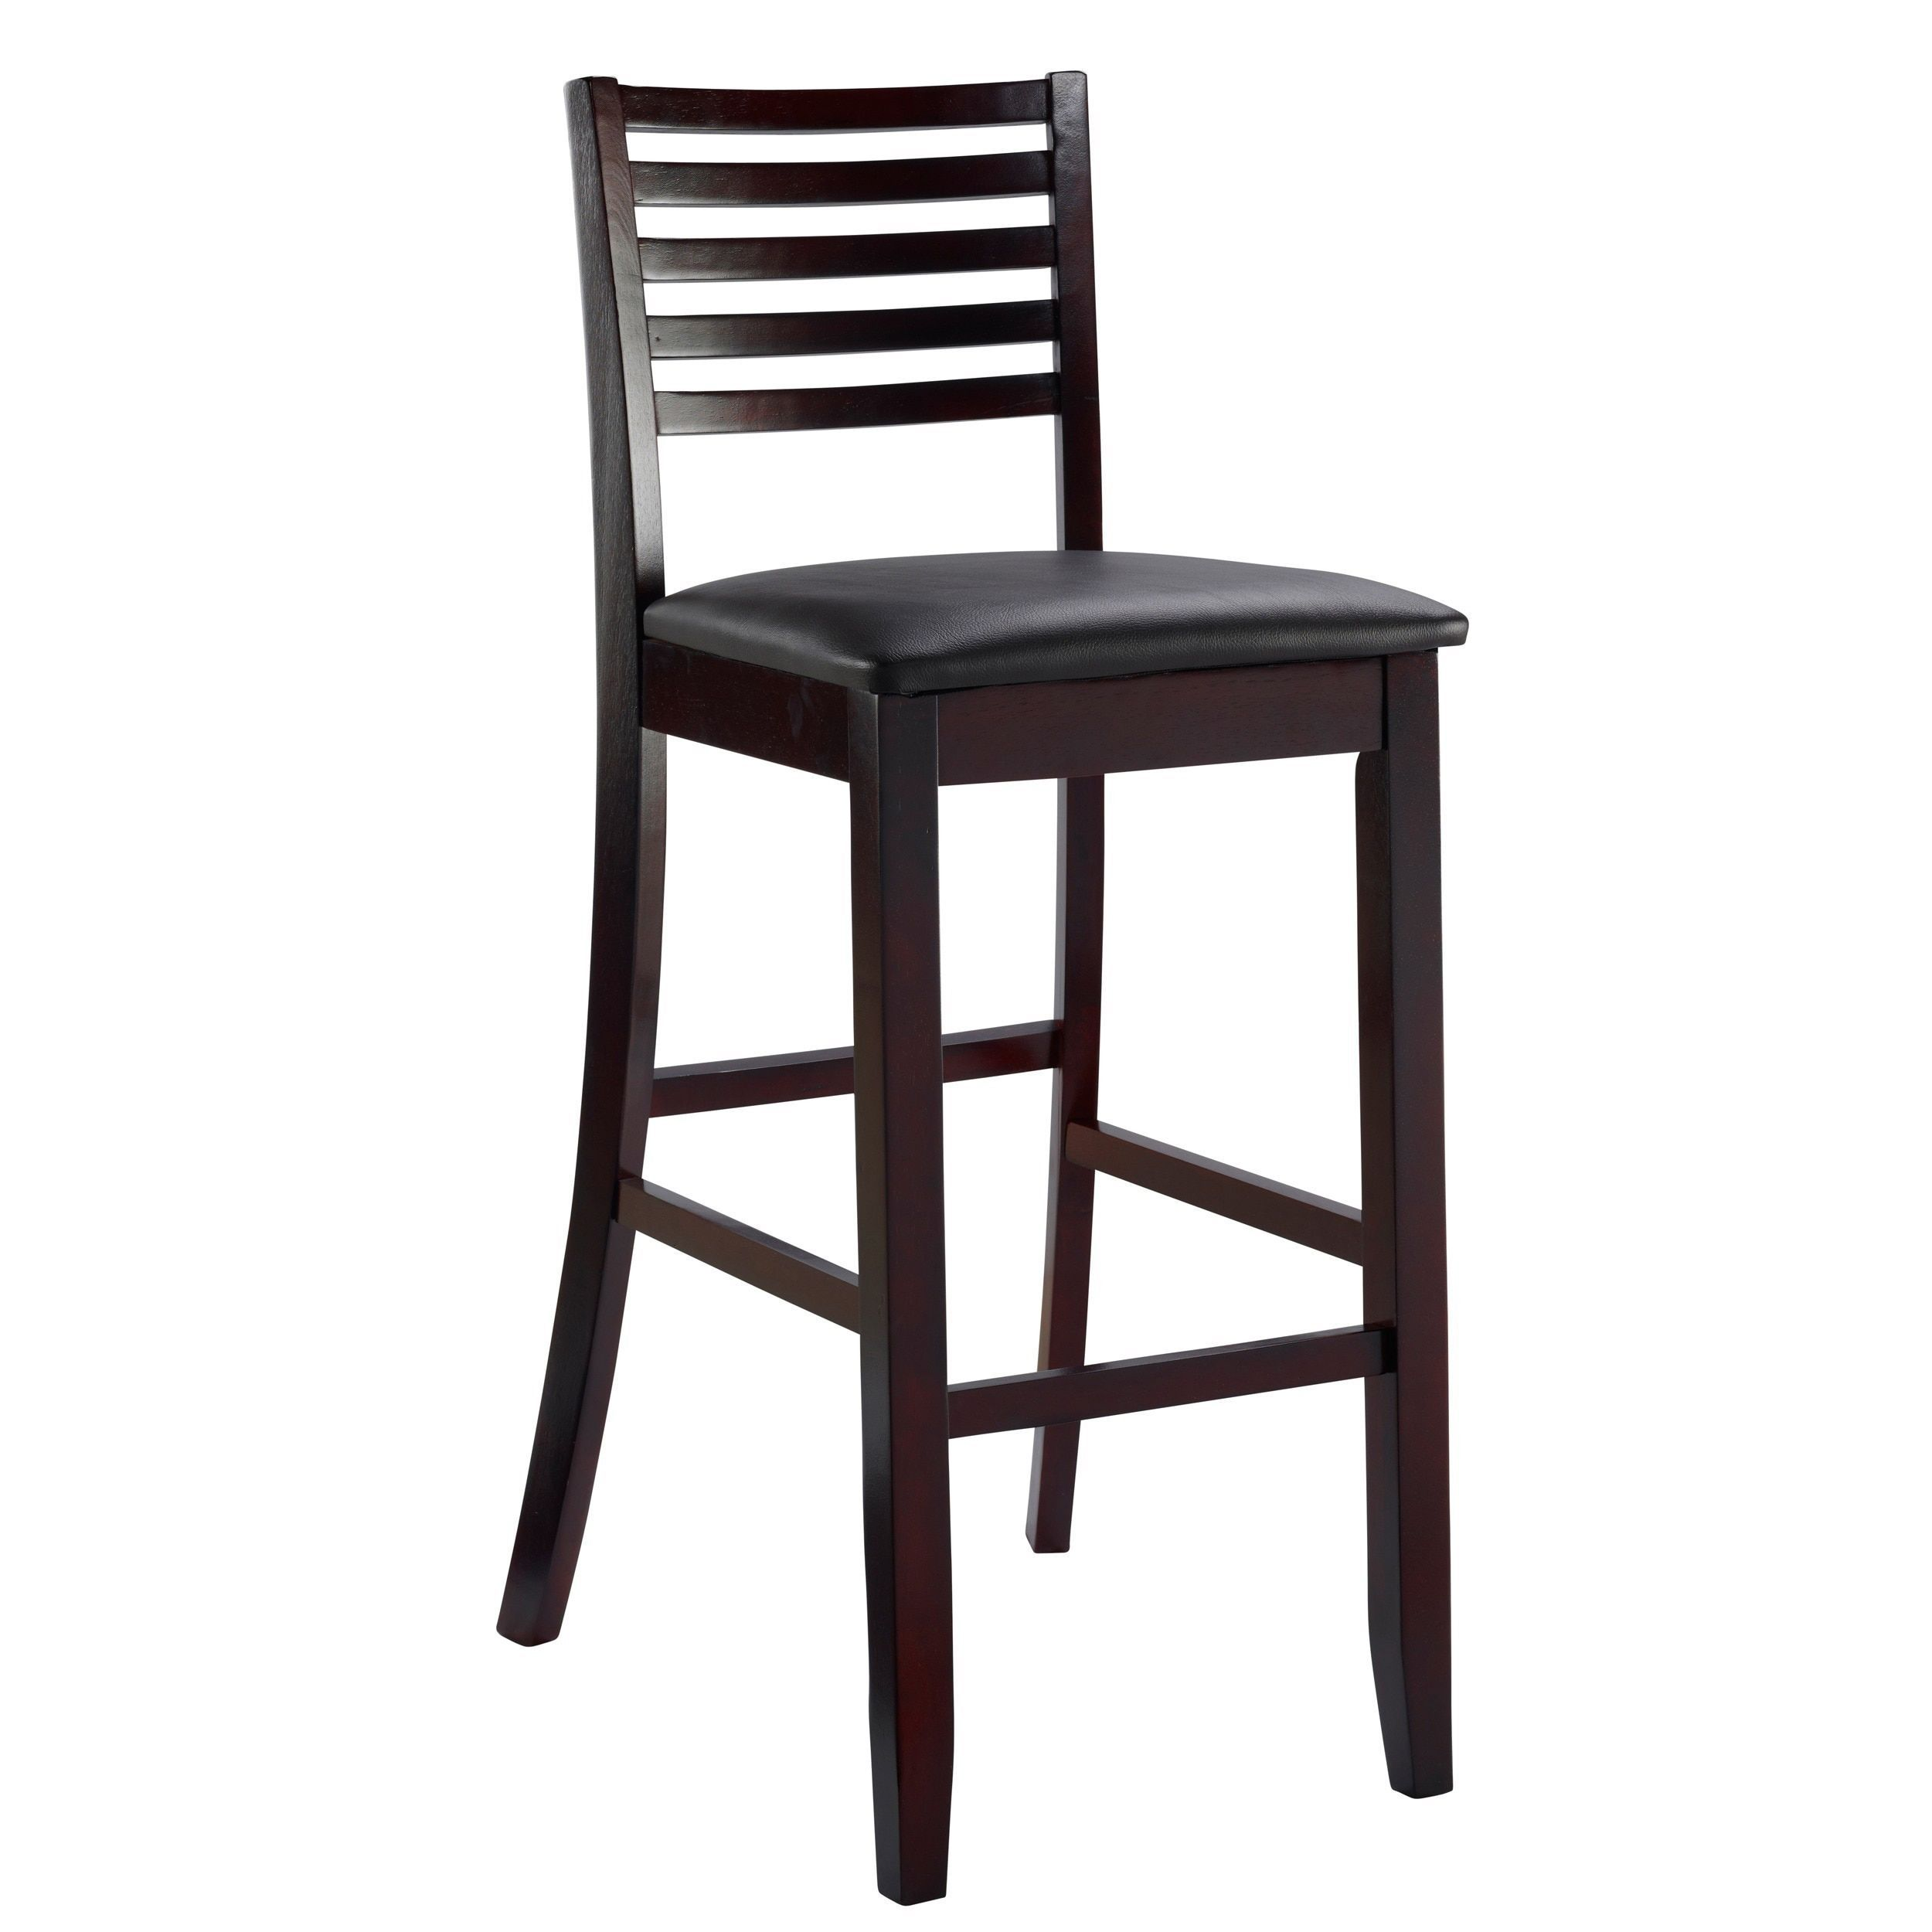 Astounding Linon Piedmont Espresso Ladder Back Counter Stool Triena Camellatalisay Diy Chair Ideas Camellatalisaycom